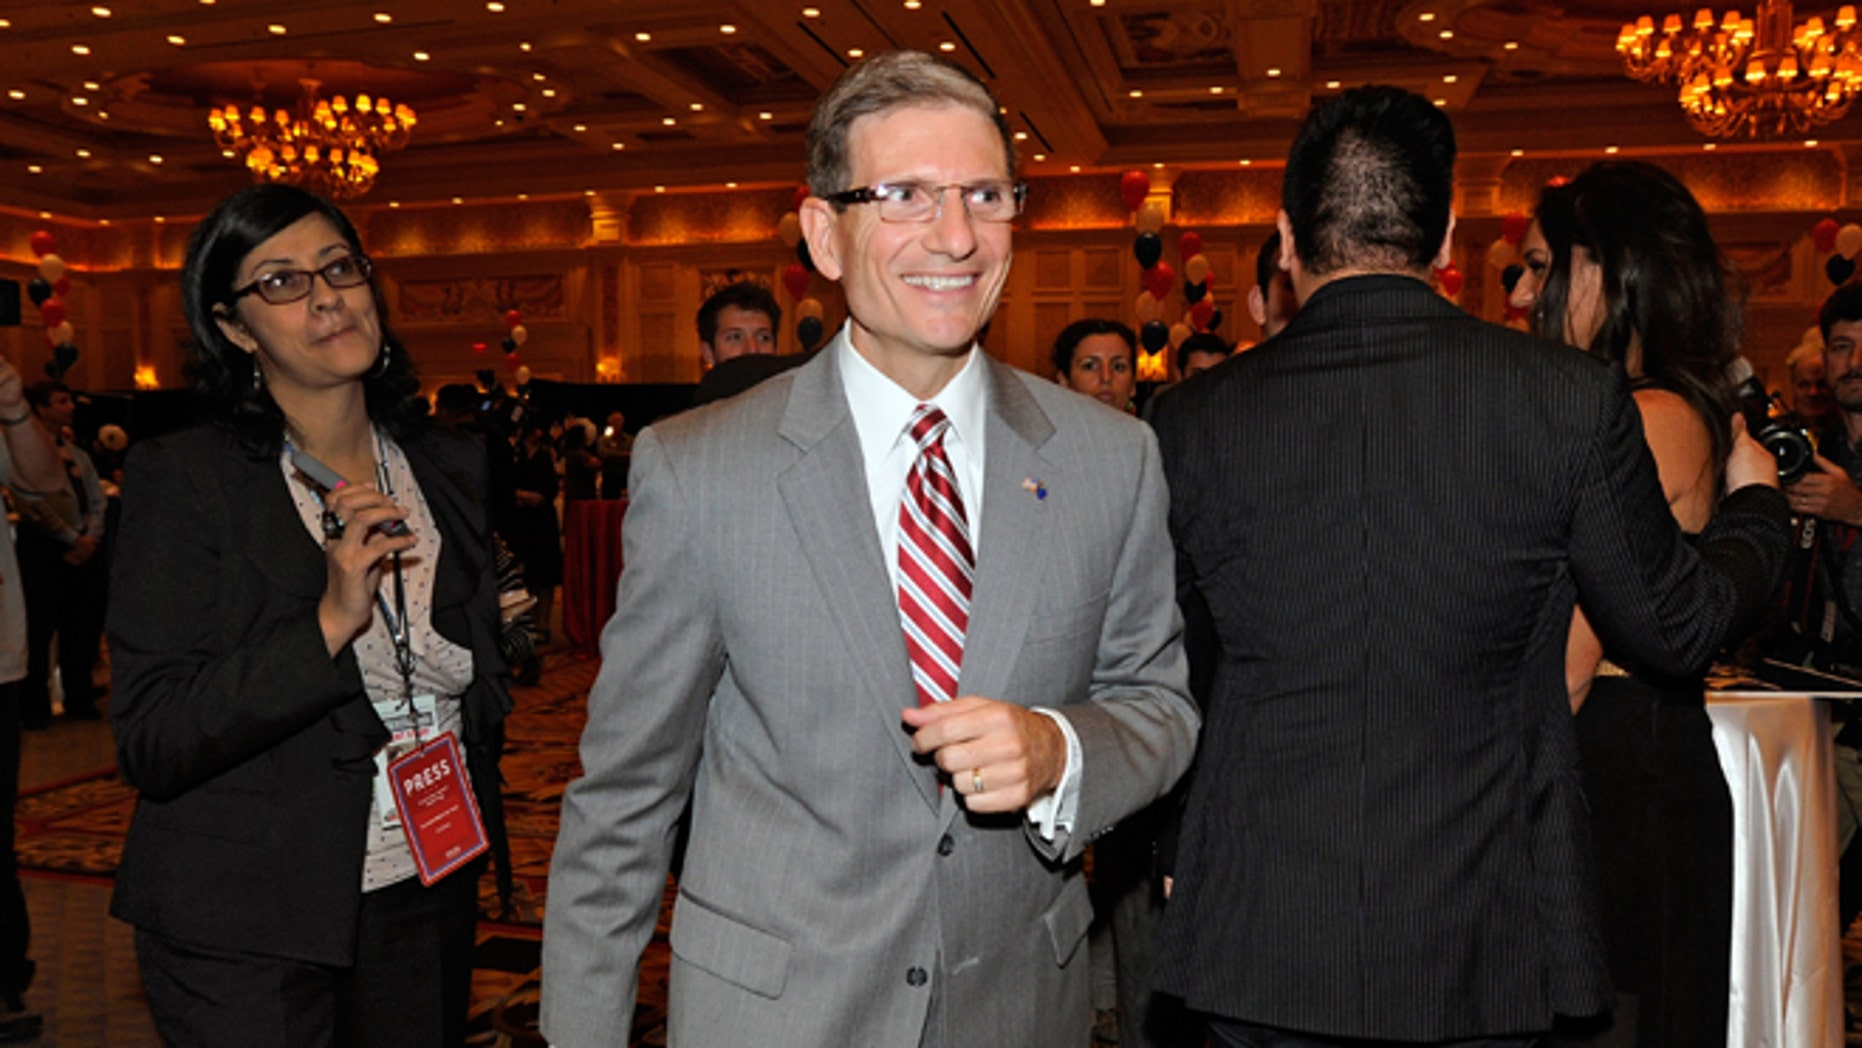 U.S. Rep. Joe Heck on November 6, 2012 in Las Vegas, Nevada.